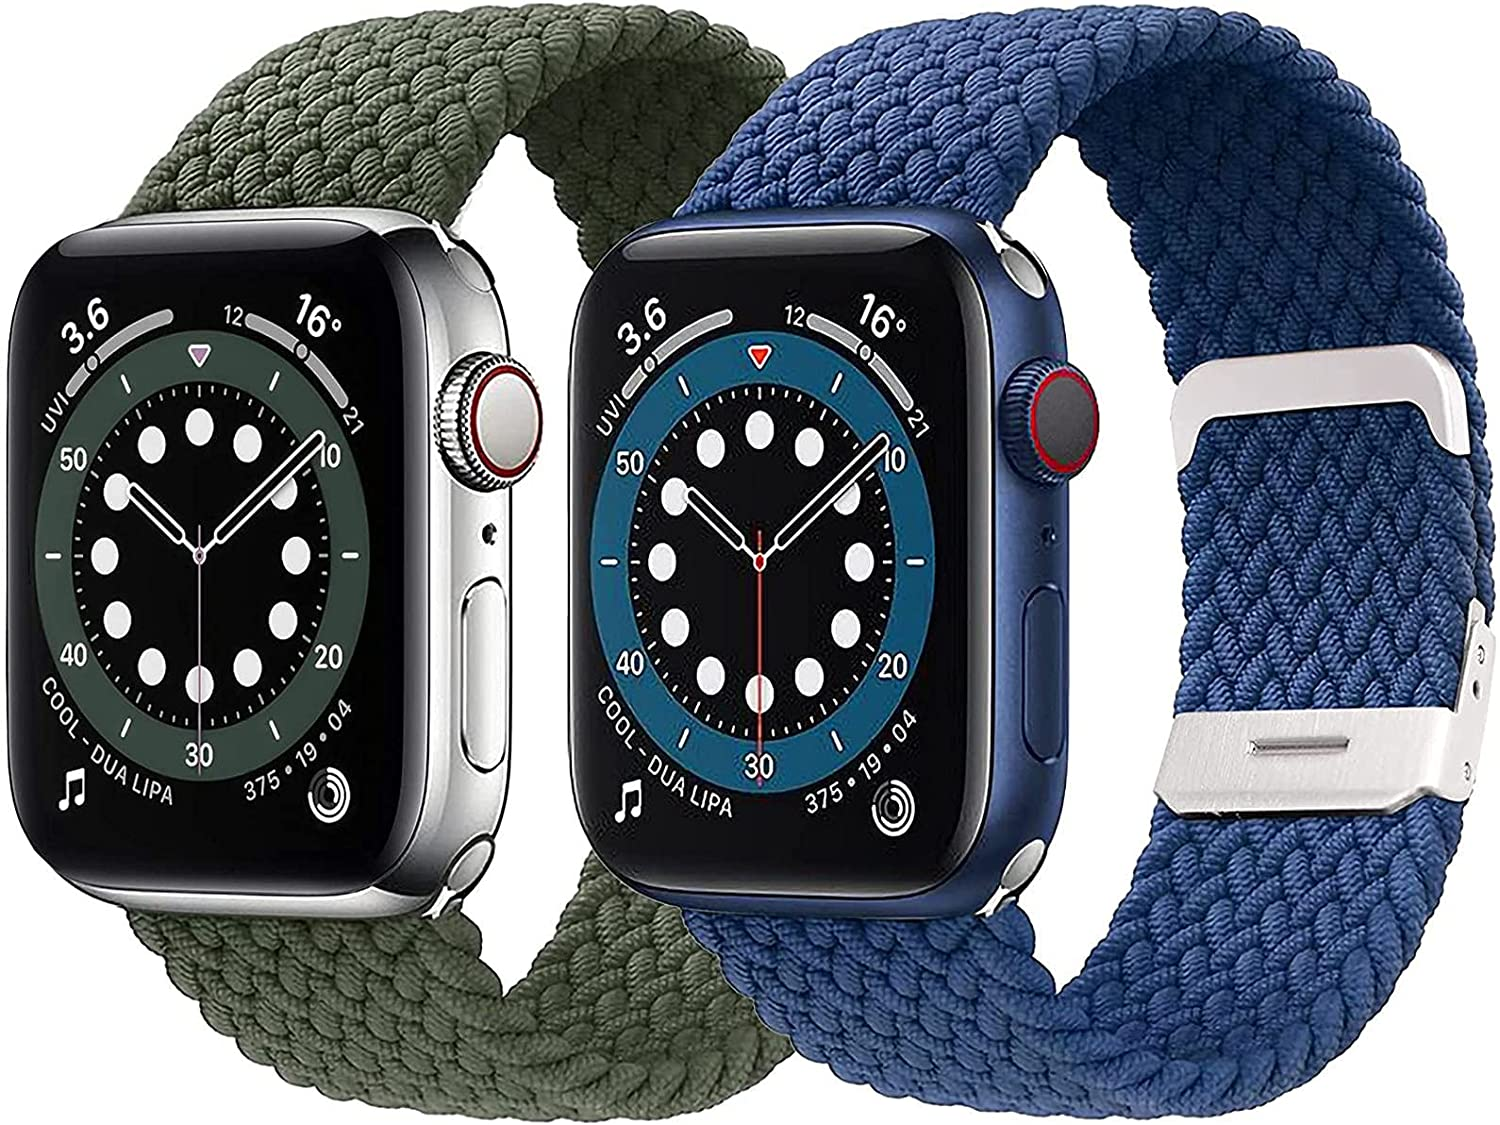 Stretchy Braided Nylon Solo Loop Bands Compatible with Apple Watch Band 38mm 40mm 42mm 44mm, Adjustable Stretch Sport Elastics Replacement Strap Compatible with iWatch Series 6/5/4/3/2/1 SE for Men Women